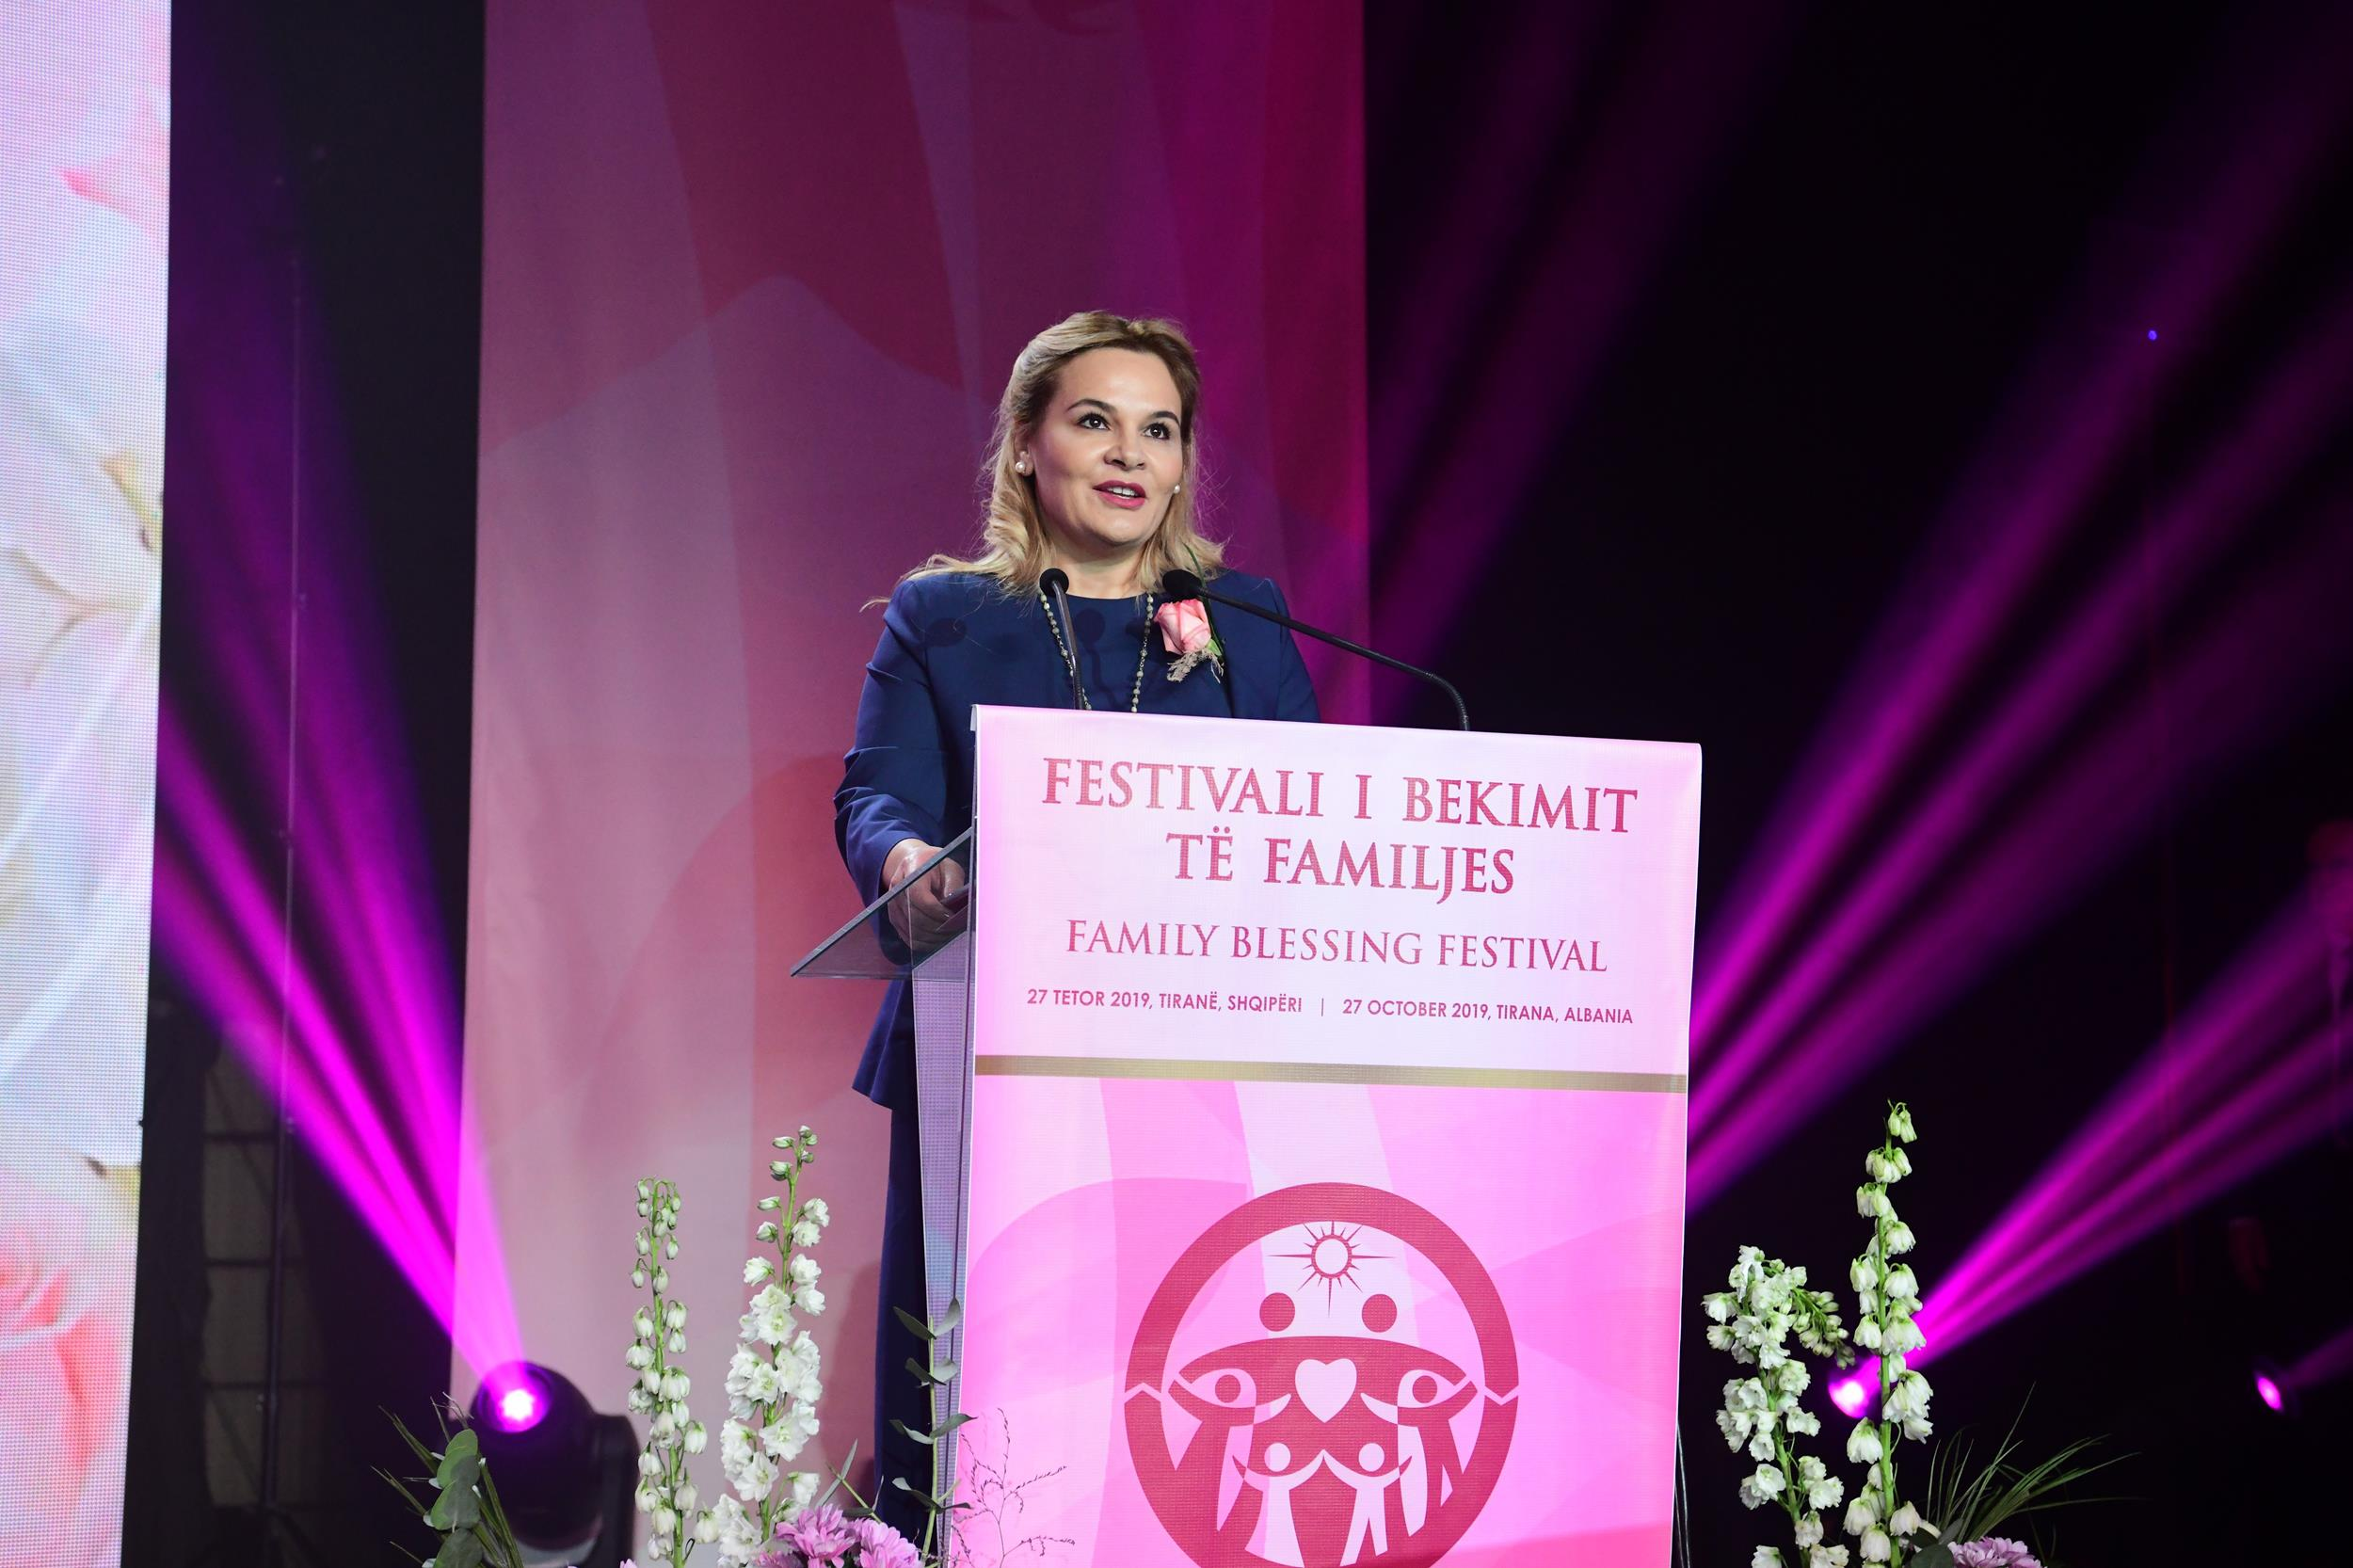 Mrs. Monika Kryemadhi speaking at the Family Blessing Festival